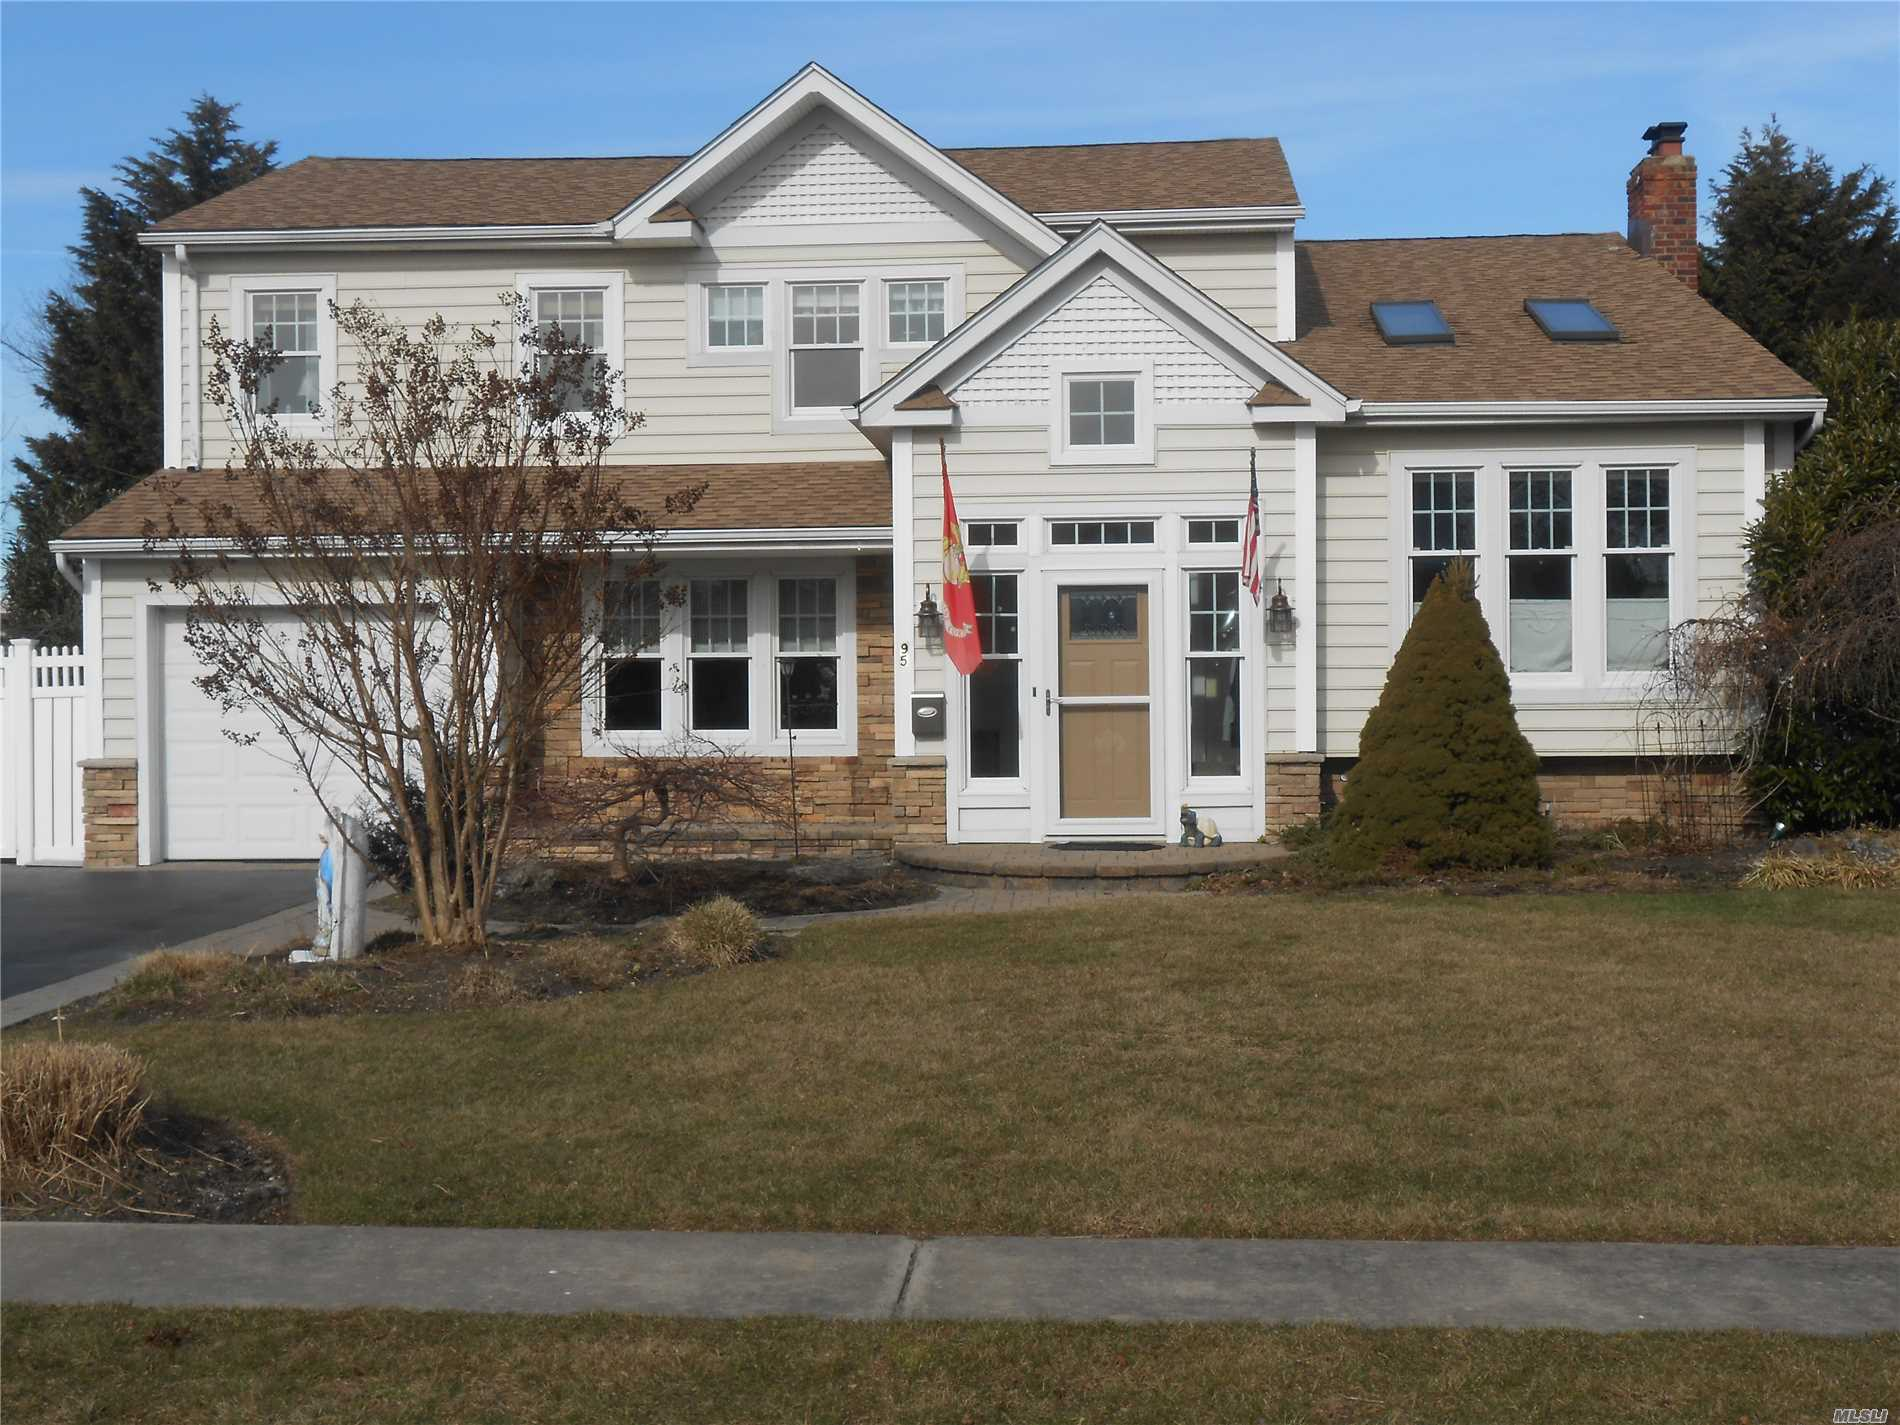 Nicely Remodeled Home With Plenty Of Space & Closets, 2 Room Master Suite With 2 Walk In Closets, With Radiant Heat In Bath & Foyer. Heated Free Form I.G.P. With 2 Year Old Heater.  Brand New Furnace, Water Gas Heater 2 Months Old,  85' Of Bulkhead. Wood Burning Fireplace, 2 Jet Ski Lifts In Back 1 Needs An Electric Repair